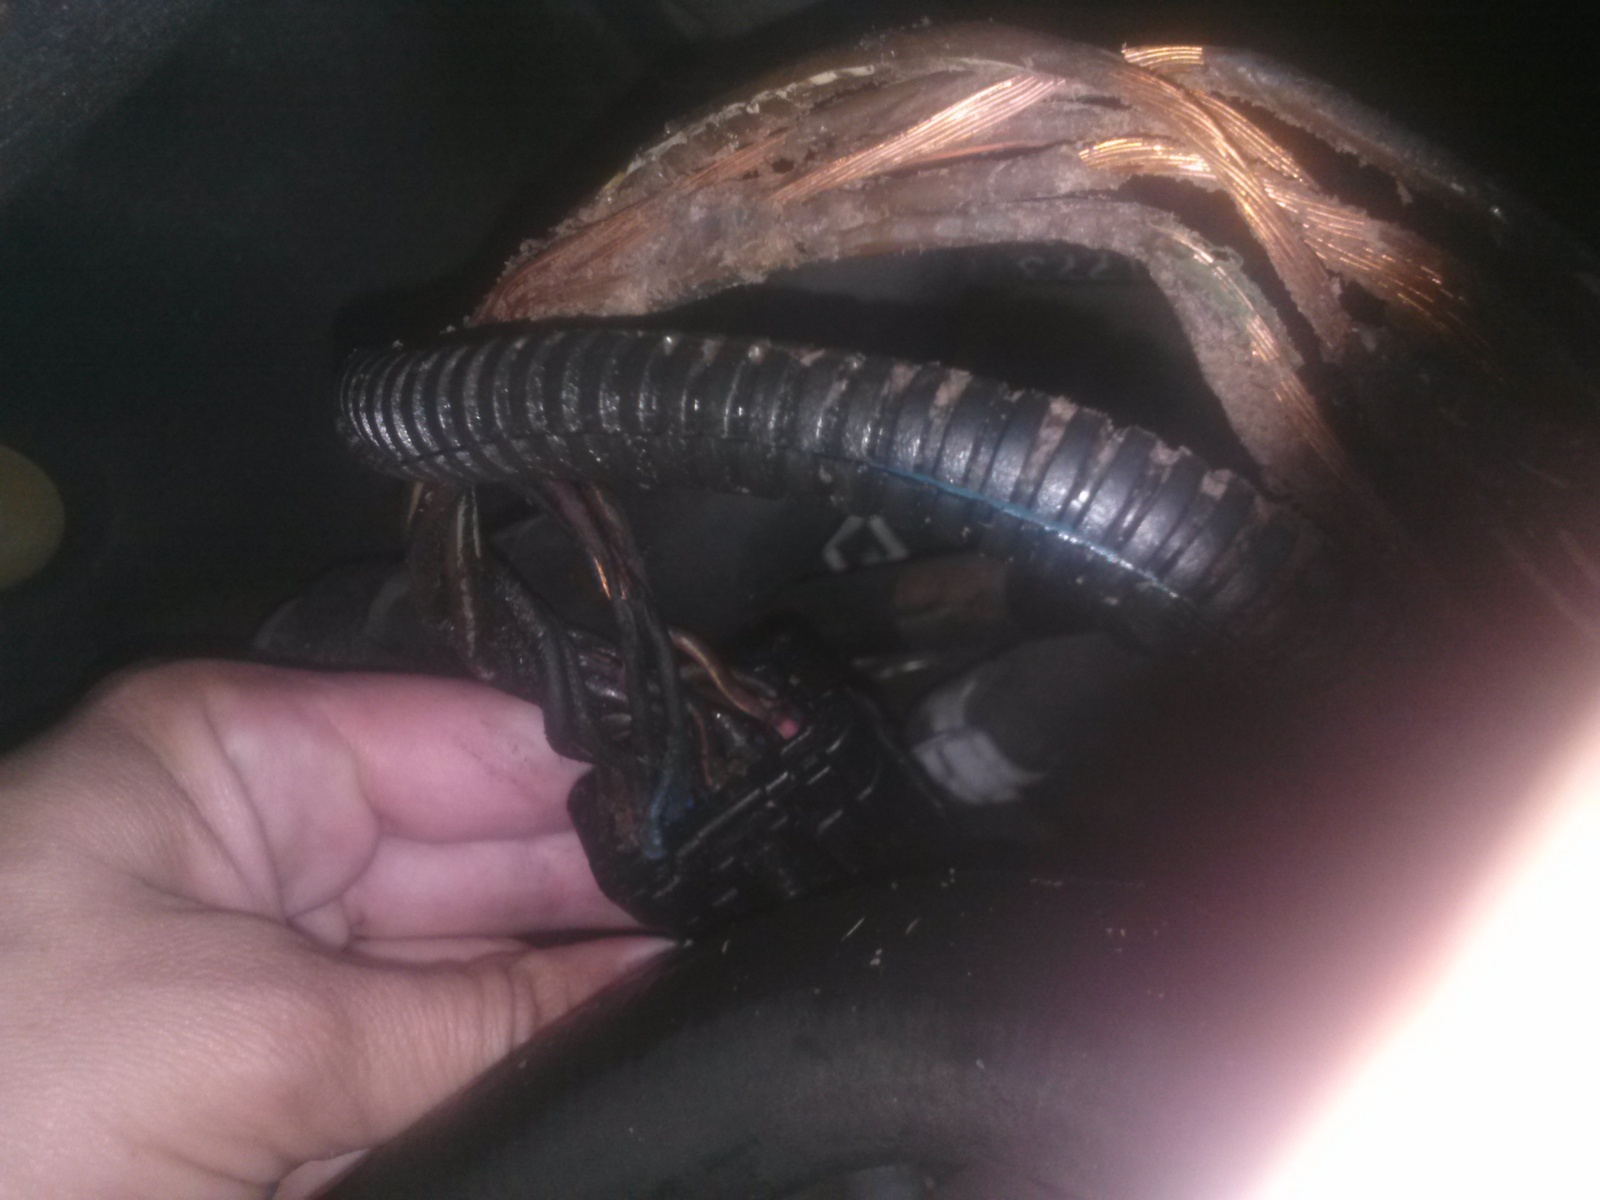 Chrysler Town Country Questions My 2004 And 2006 Wiring Harness Around Them All 6 Wires Are Touching In About Inches Of Spacing I Will Replace This Wire Report Back Soon Hope Is Problem